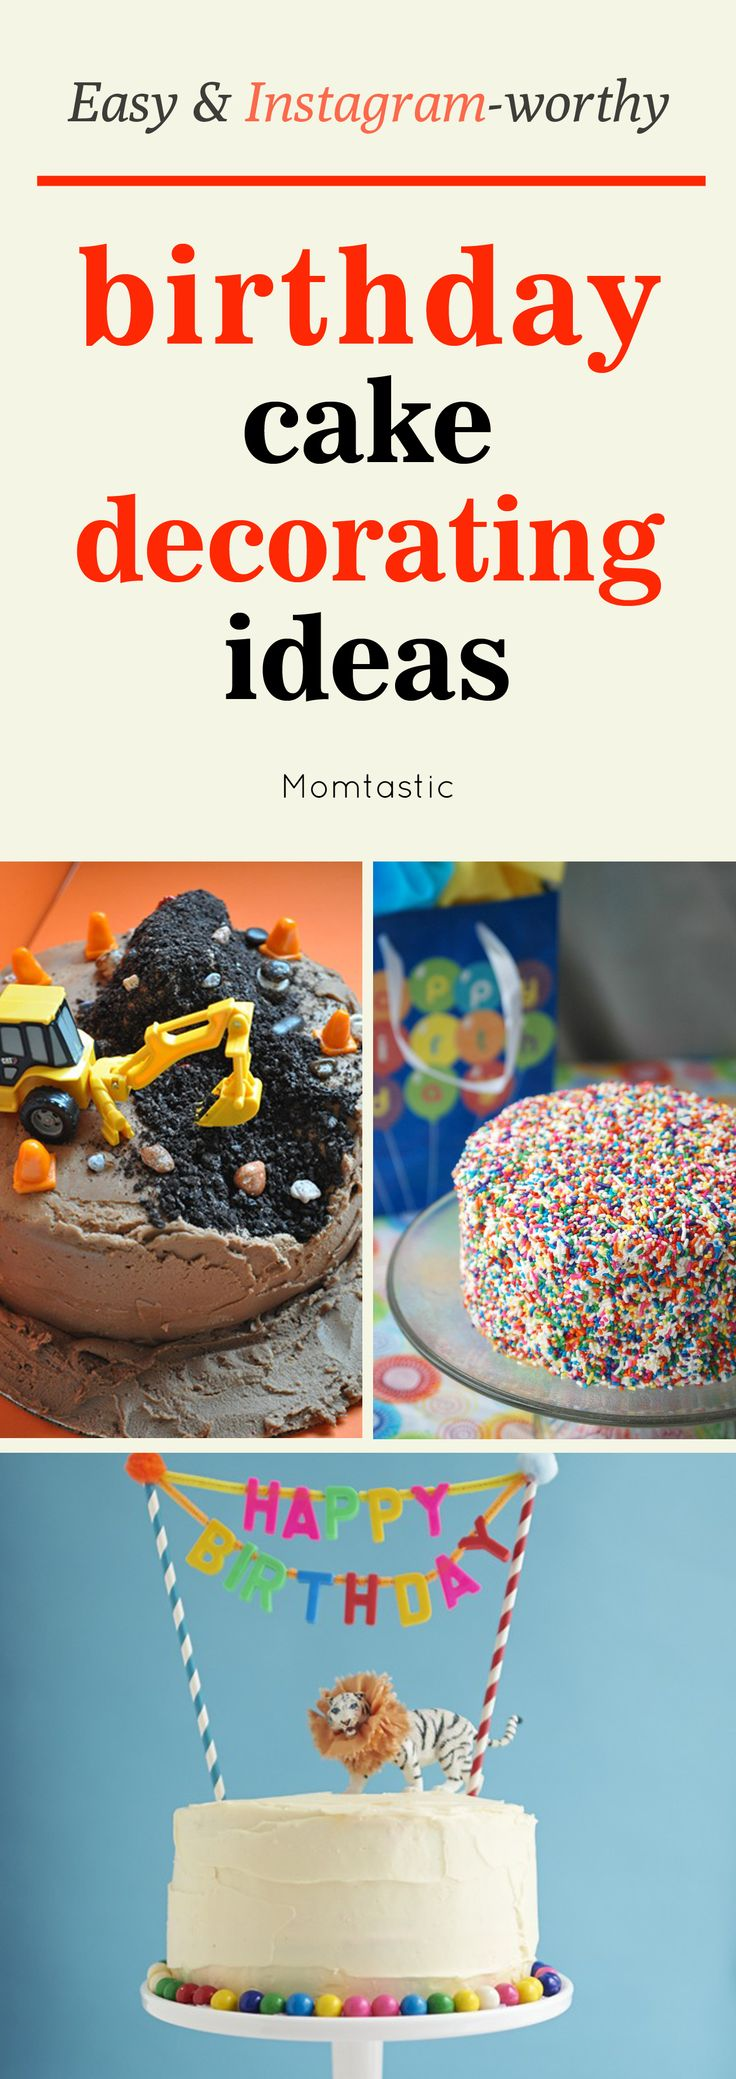 196 best images about Kids  Birthday Party on Pinterest ...